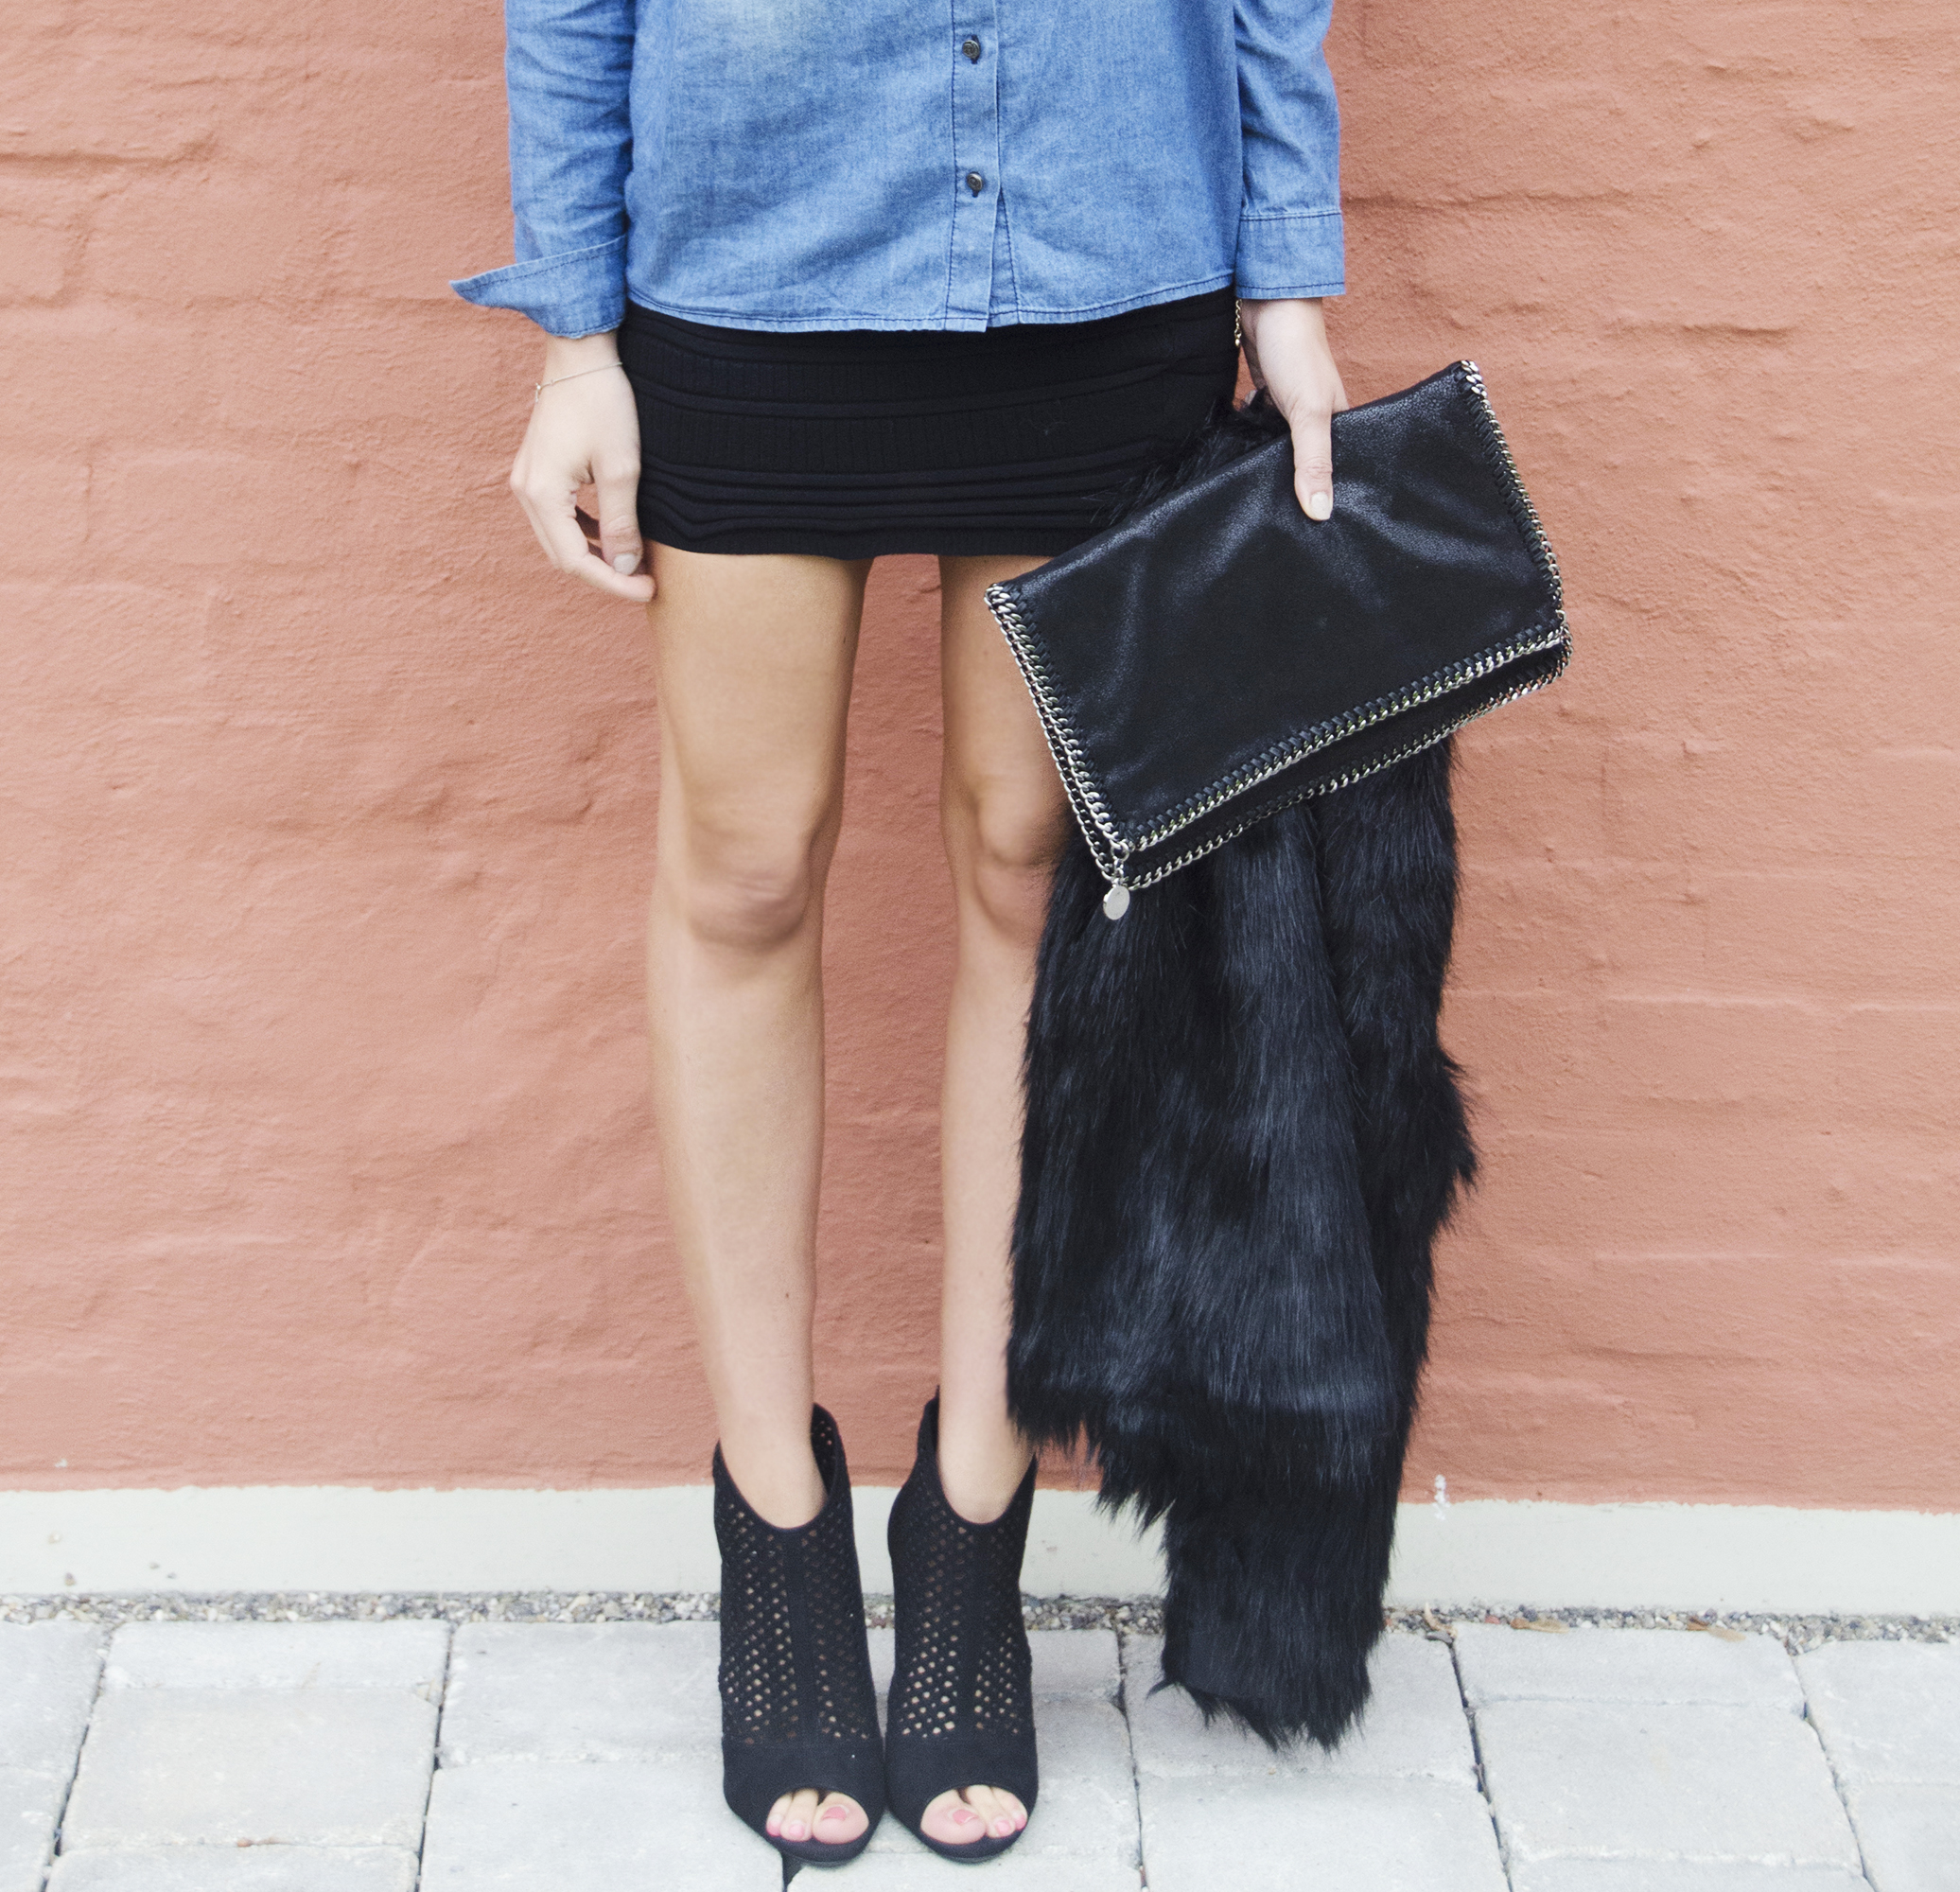 miniskirtanddenim_fashionblog